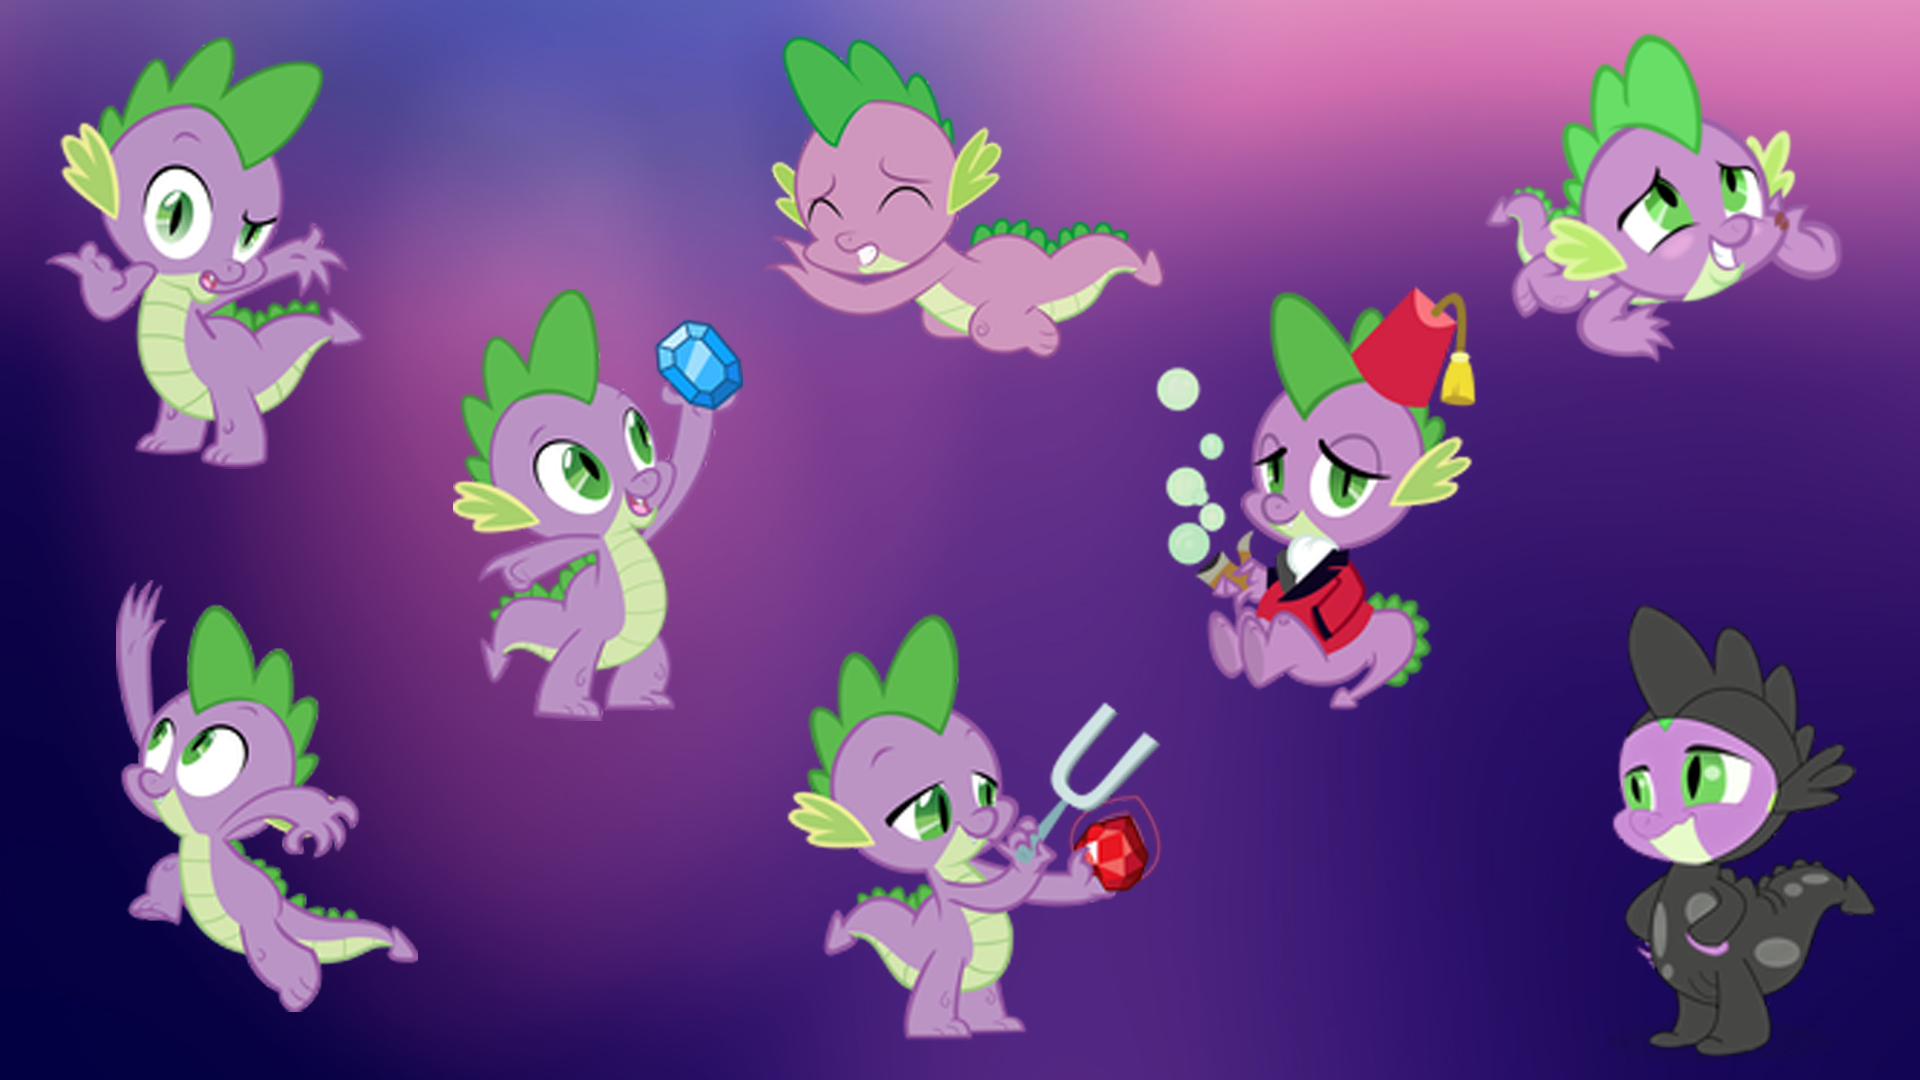 ... of Images Of Fanmade Spike Magic Wallpaper Friendship Little Pony